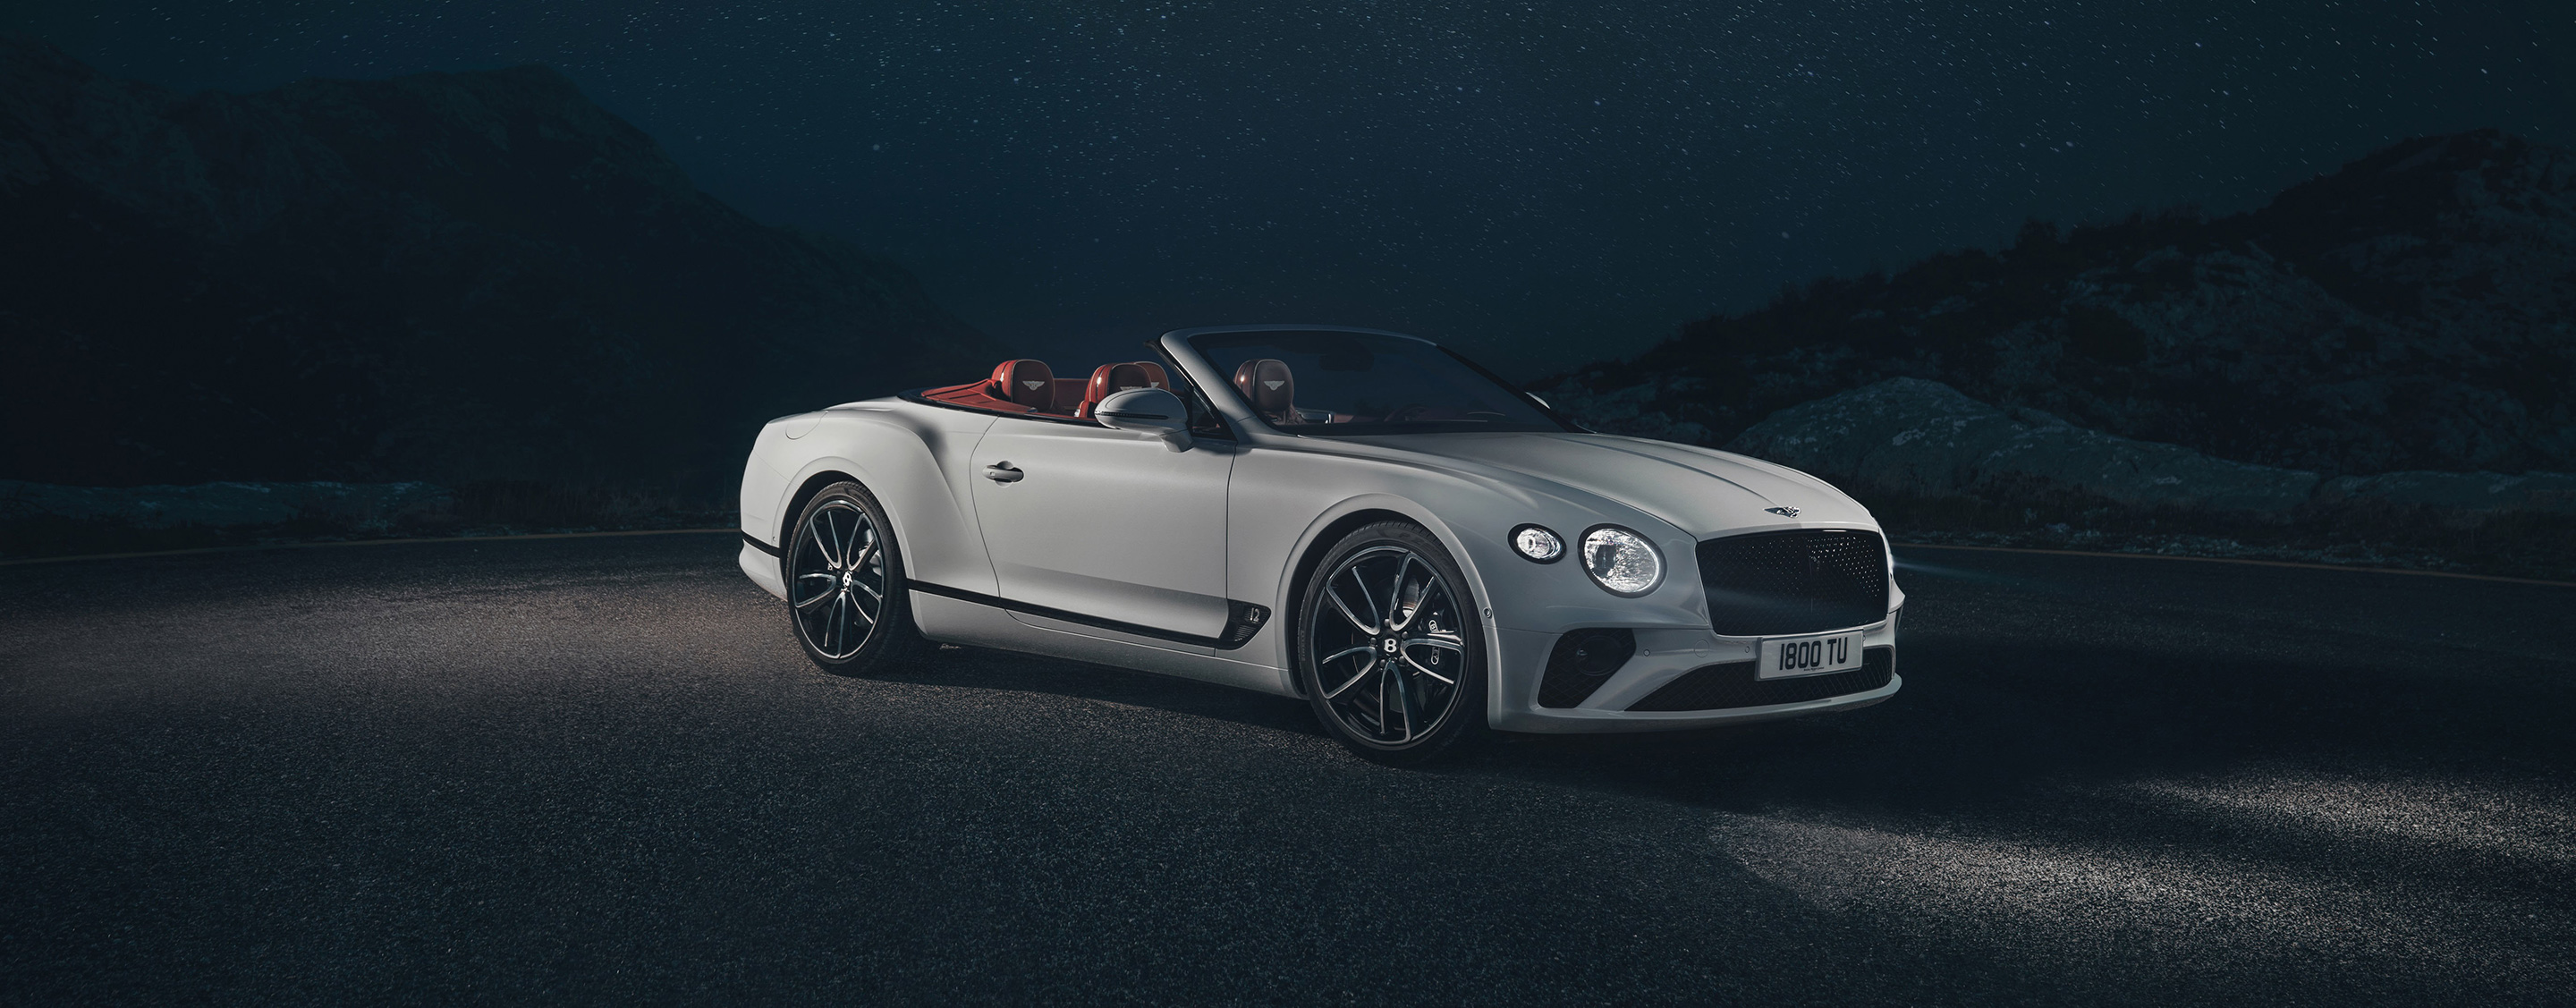 TrackWorthy - Bentley Continental GT Convertible (22)